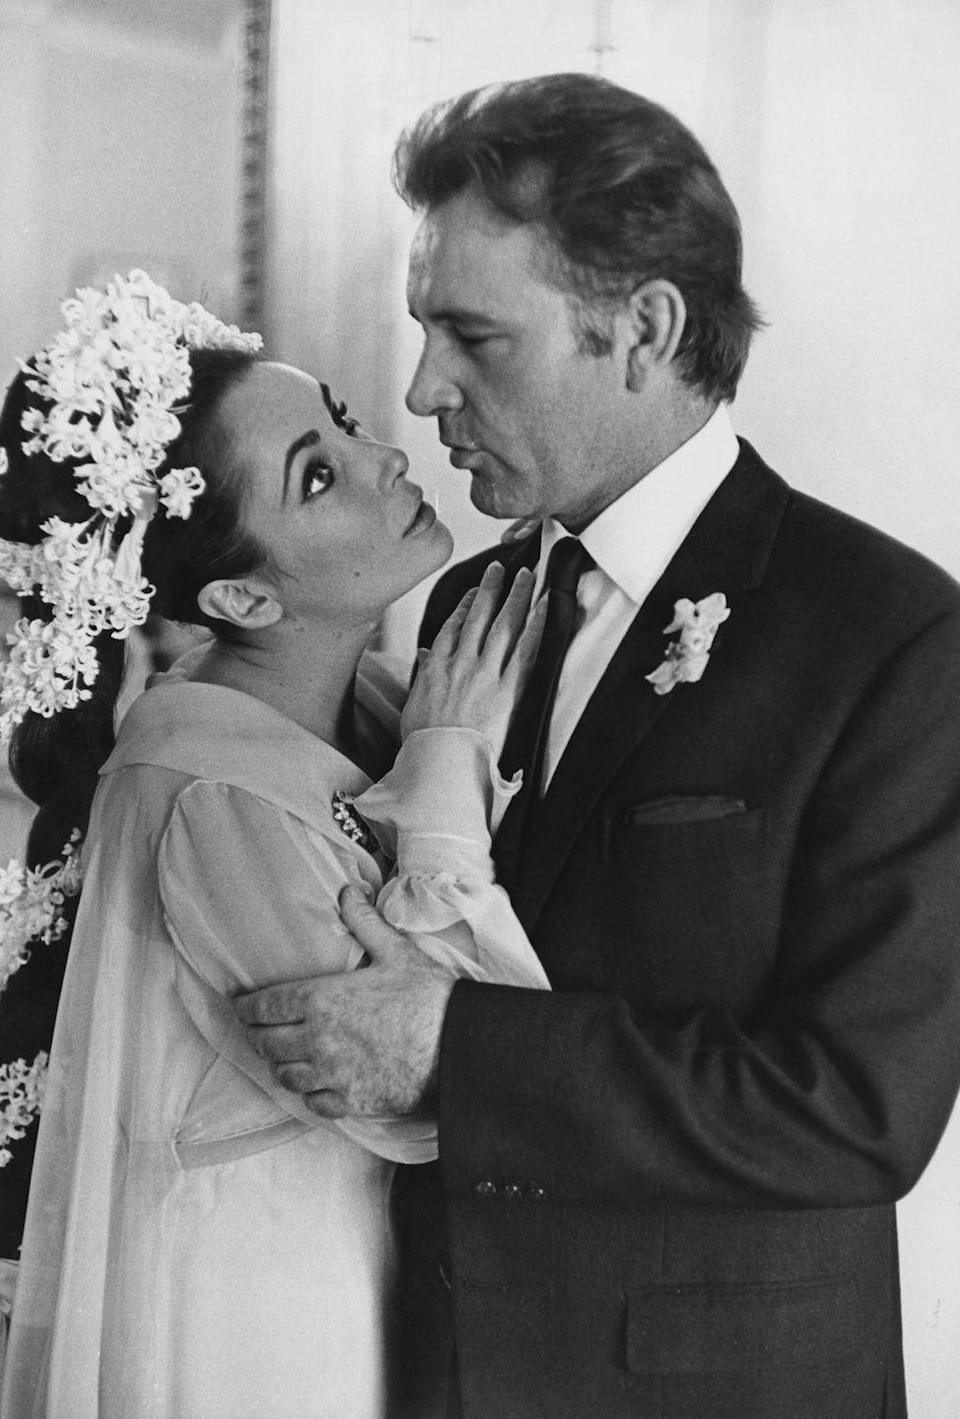 <p>After meeting on the set of <em>Cleopatra</em> and commencing a paparazzi-ravaged relationship, Elizabeth Taylor and Welsh actor Richard Burton tied the knot in Montreal, Canada, on March 15. The in-love stars made a whopping 11 movies together before divorcing in June 1974. But their story wasn't quite finished, because they remarried again in October 1975, in Botswana. The flame flickered out eventually, however: The couple divorced a second time in July 1976.</p>